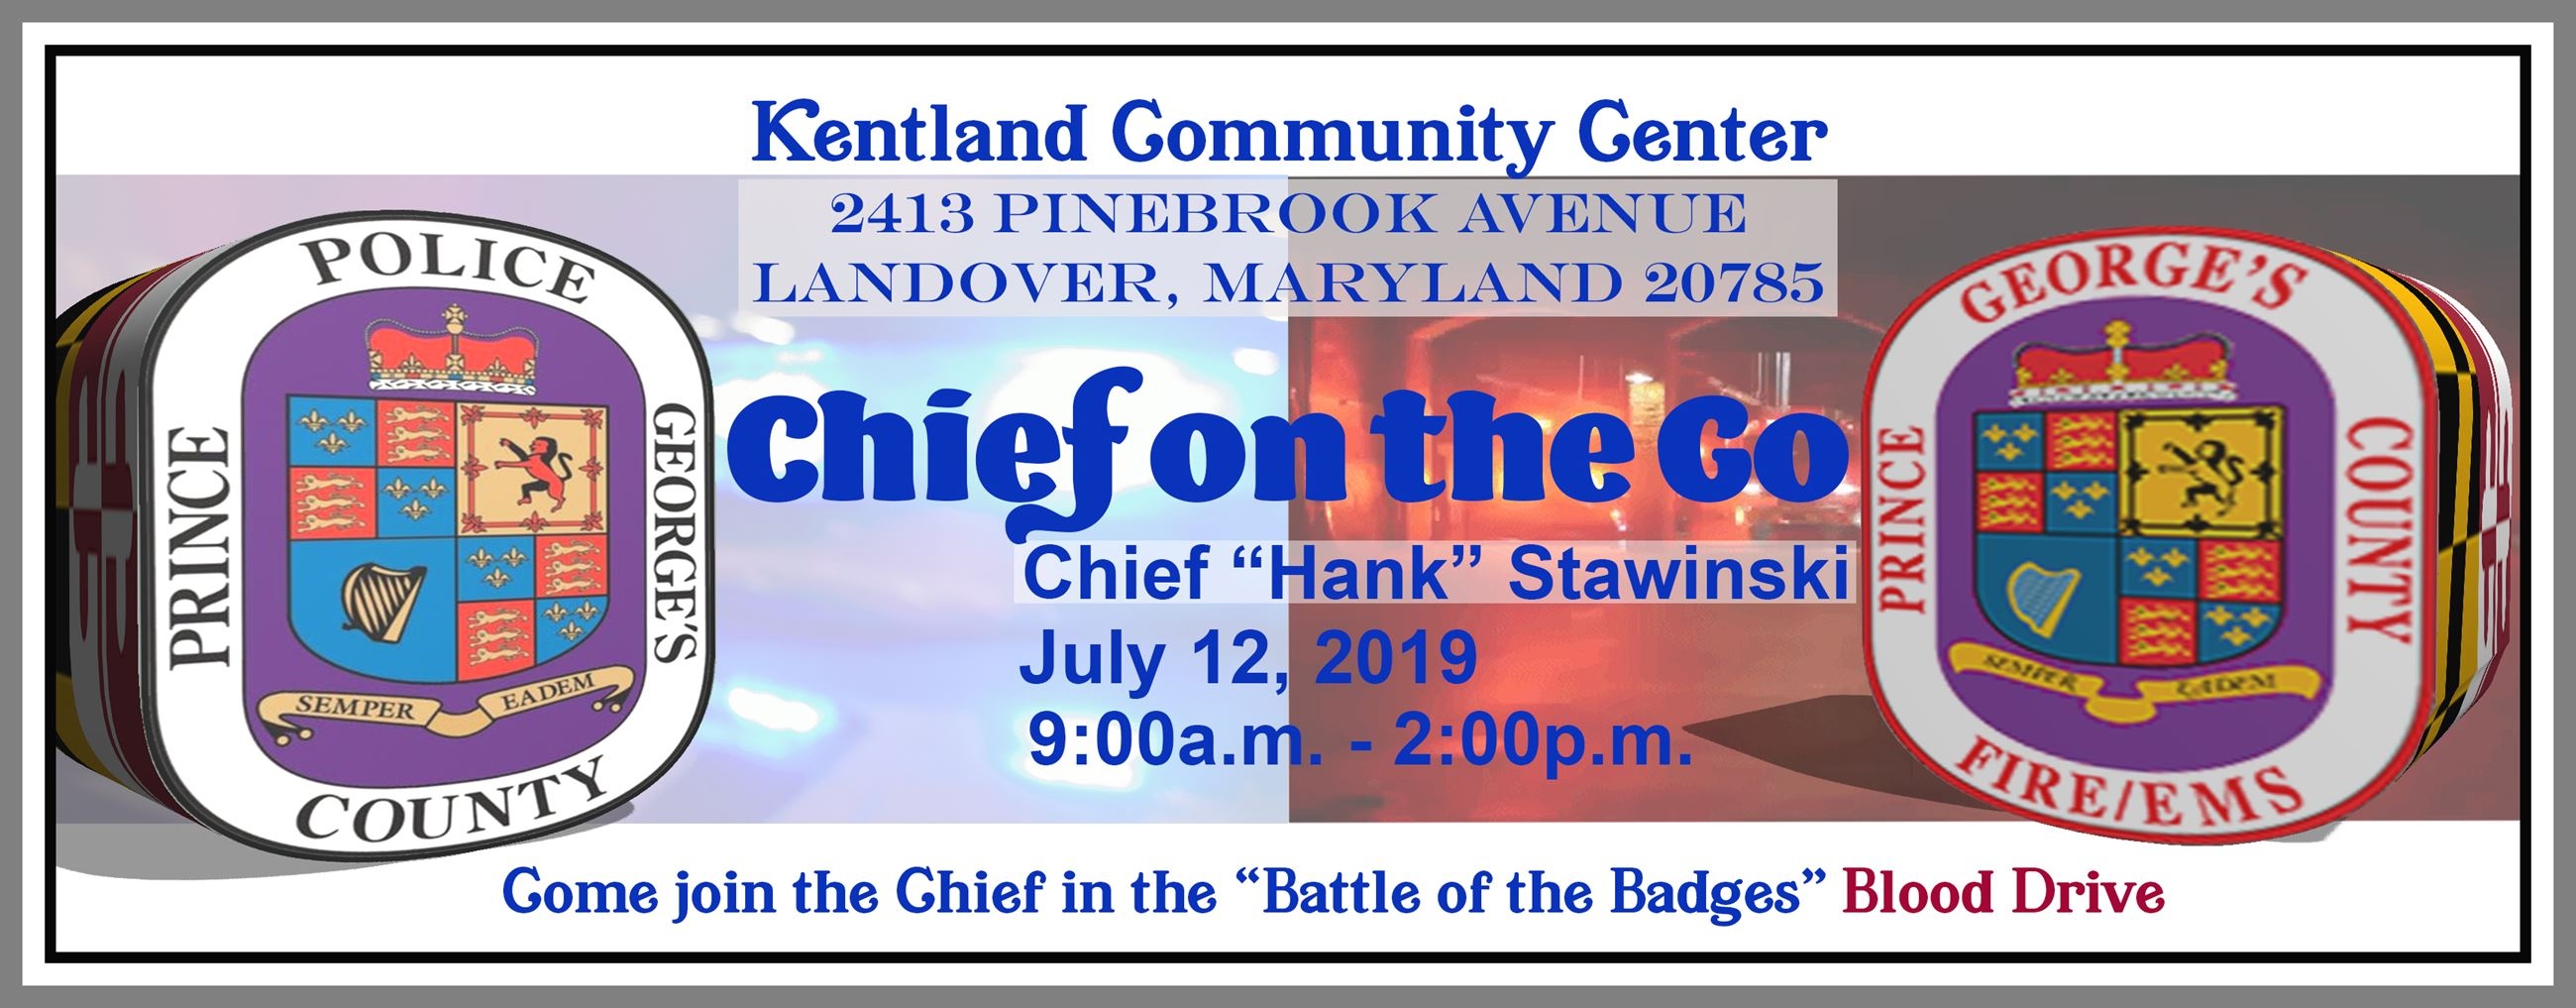 Battle of the Badges Blood Drive 2019